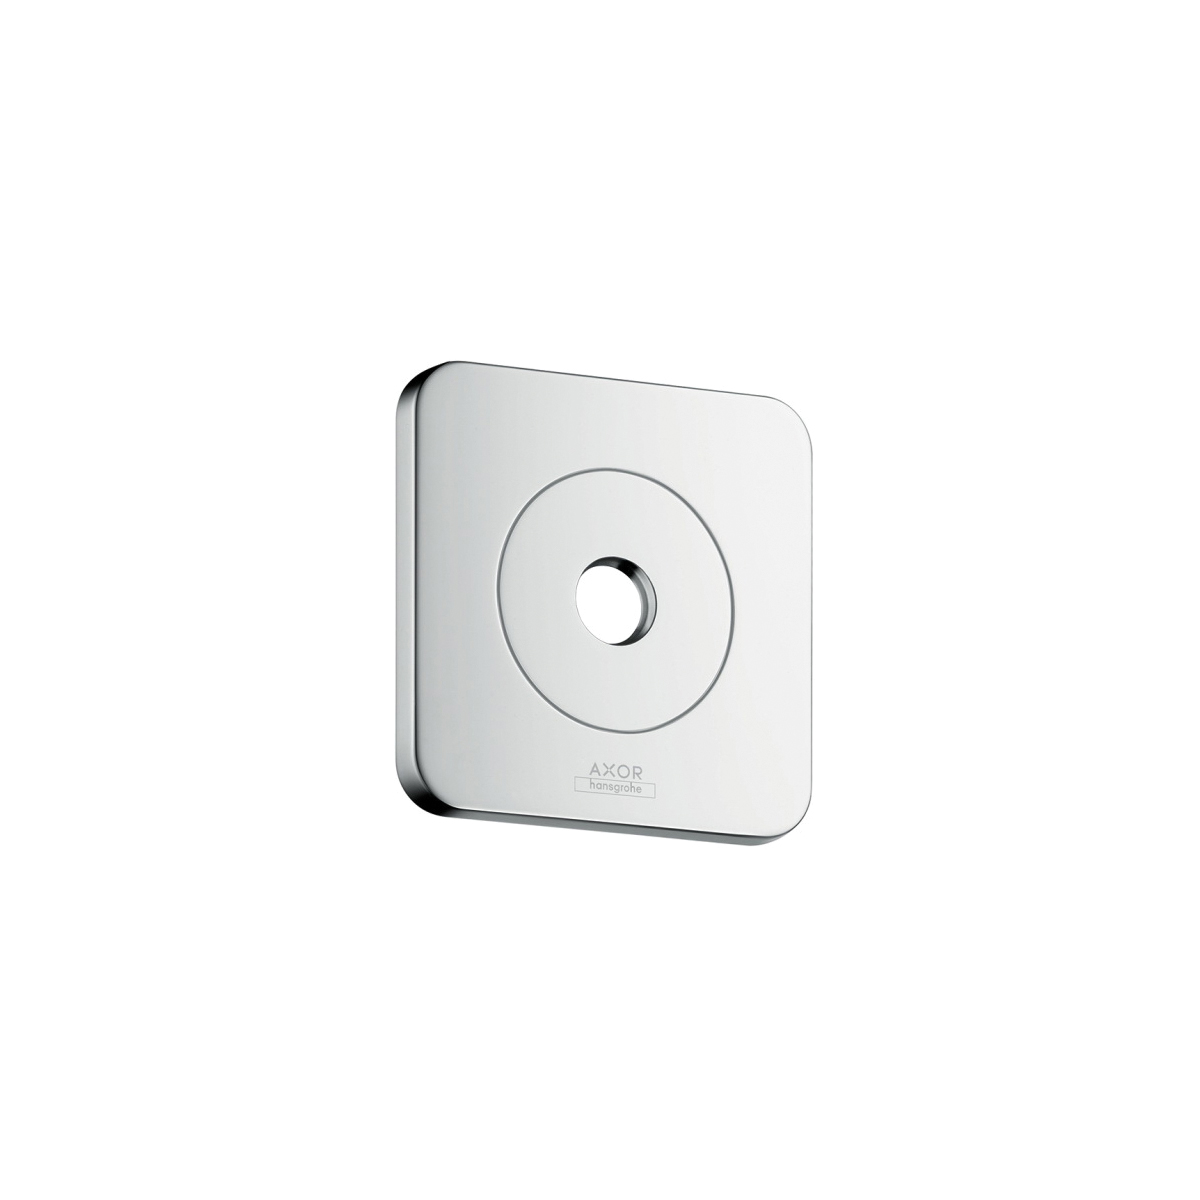 Hansgrohe 36725001 AXOR Citterio E Wall Mount Wall Plate, Metal, Chrome Plated, Import